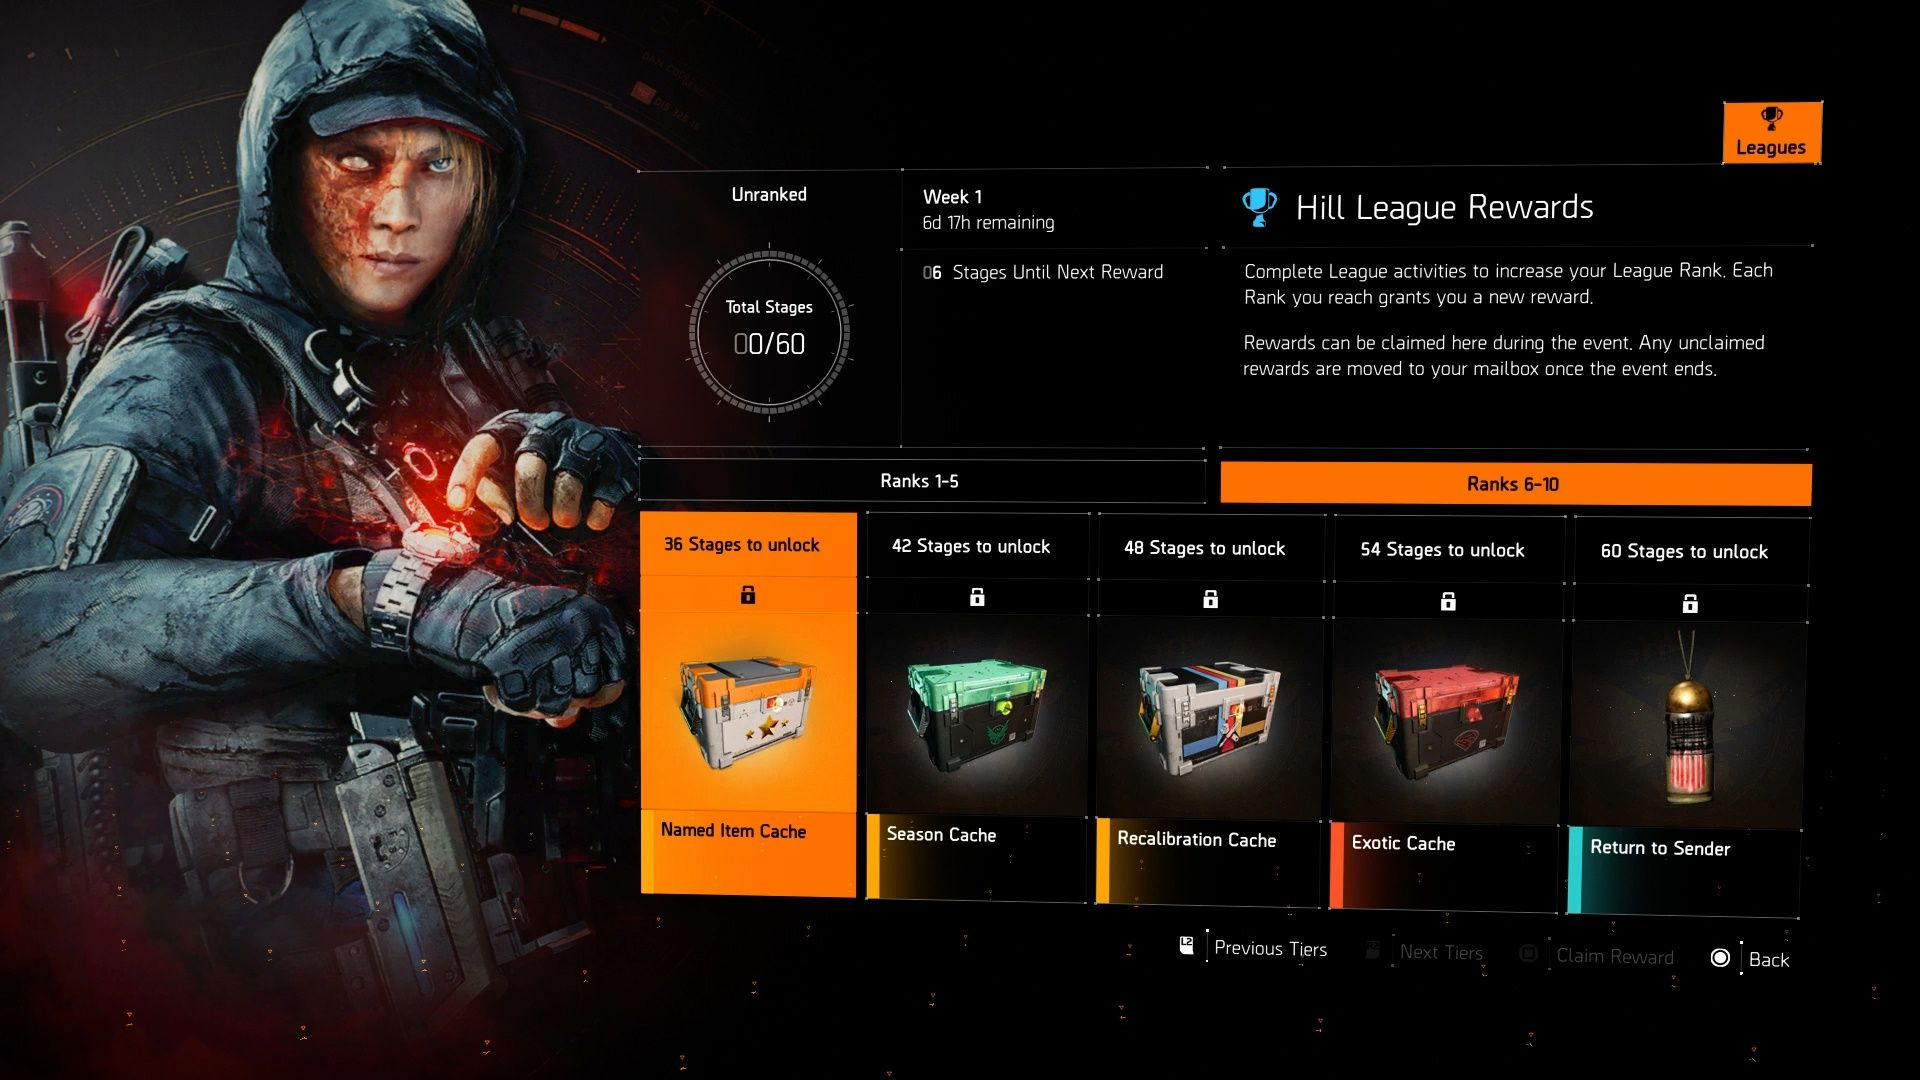 Image showing the Rank 6-10 rewards in The Division 2's Hill League.